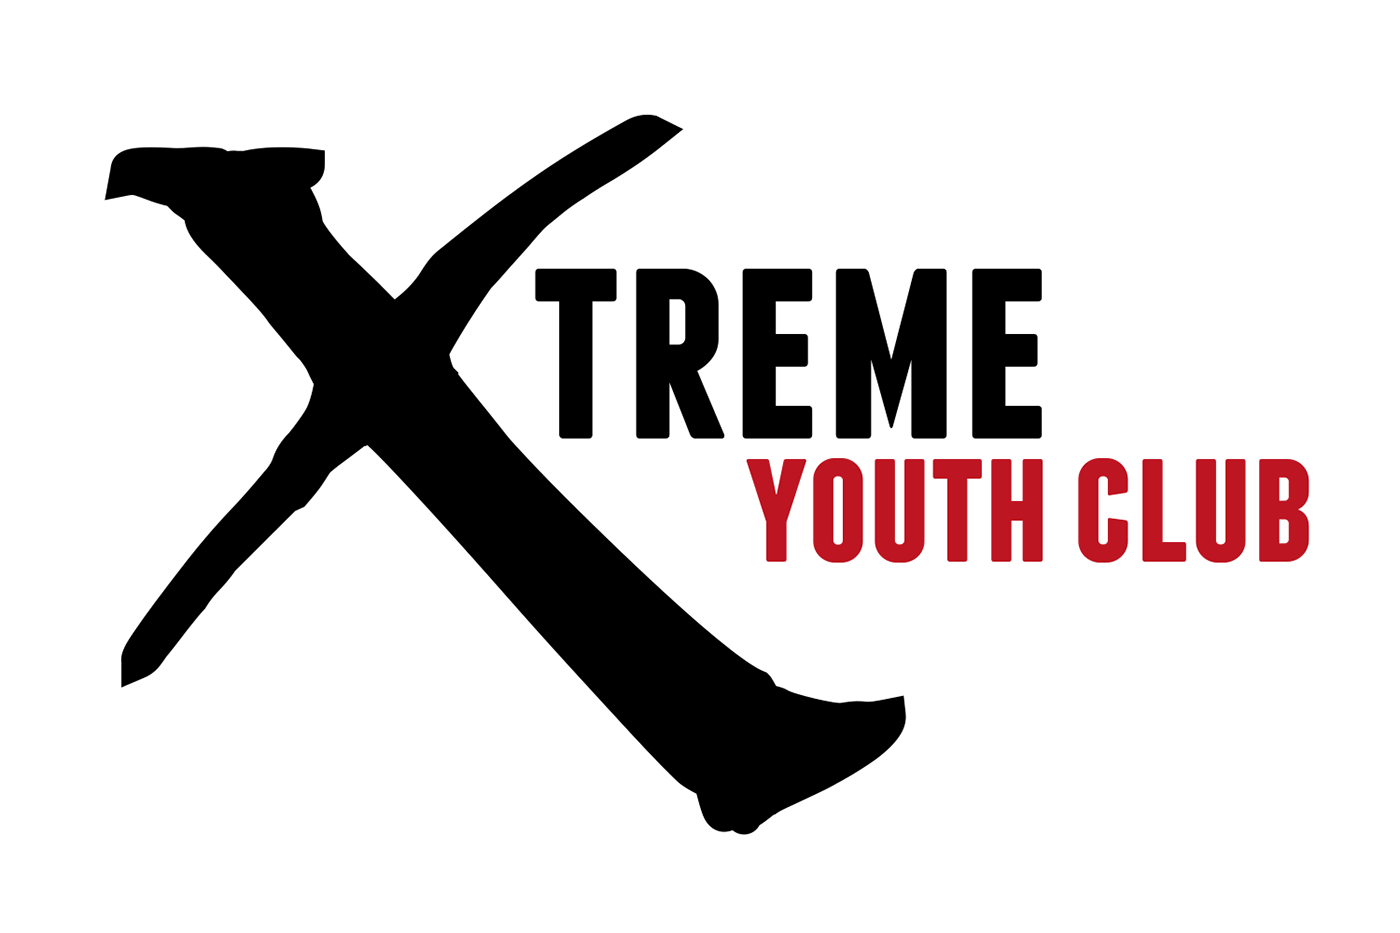 Xtreme Youth Group Logo Re Design On Behance